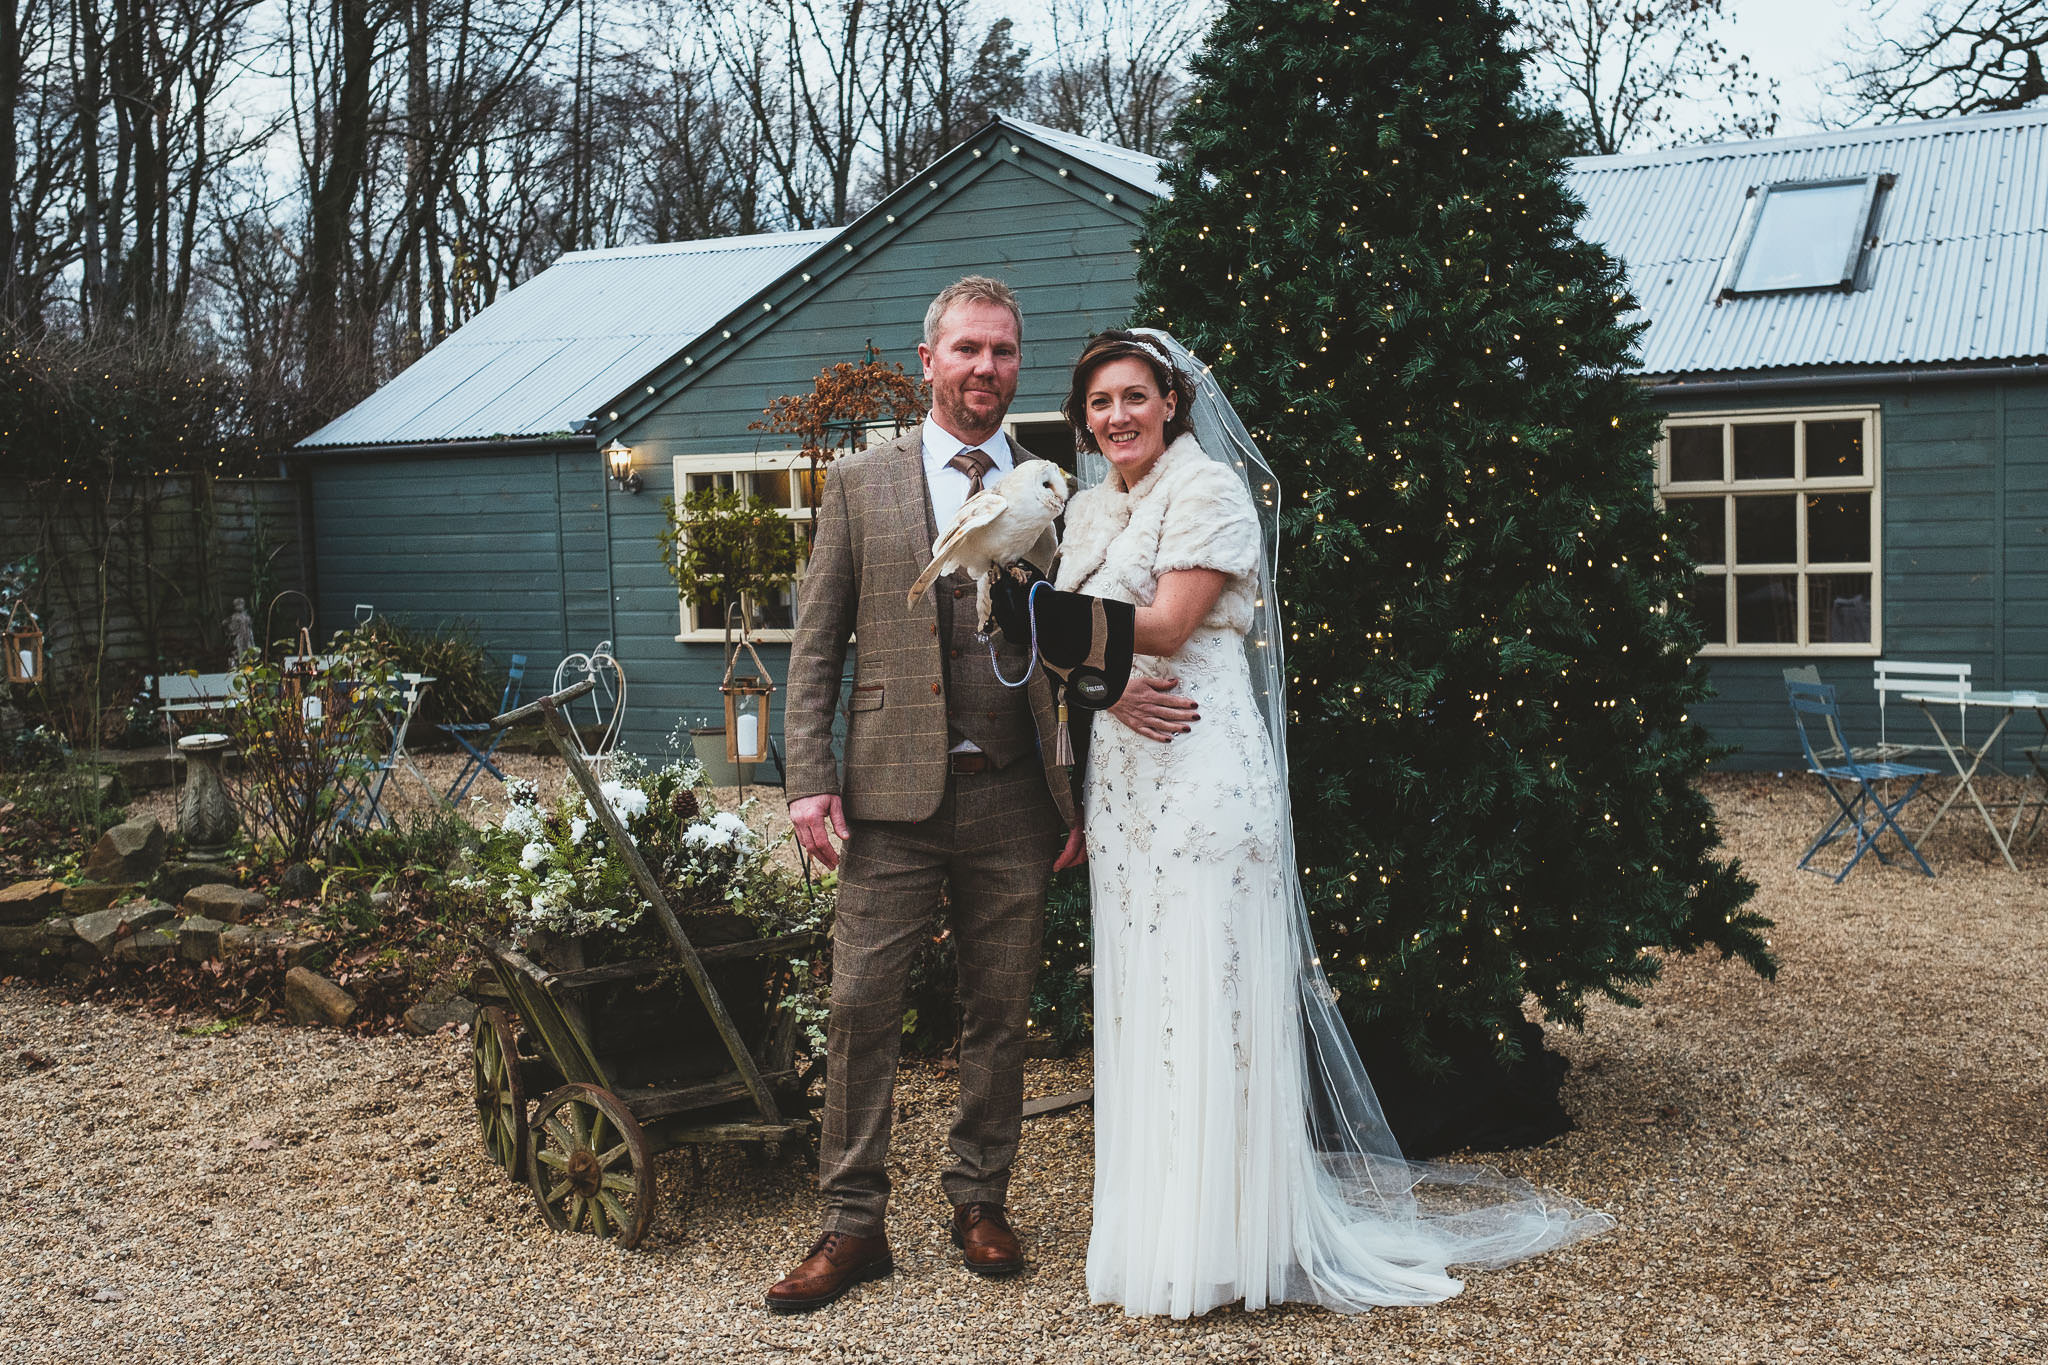 Bride and groom pose with owl in The Parlour at Blagdon courtyard